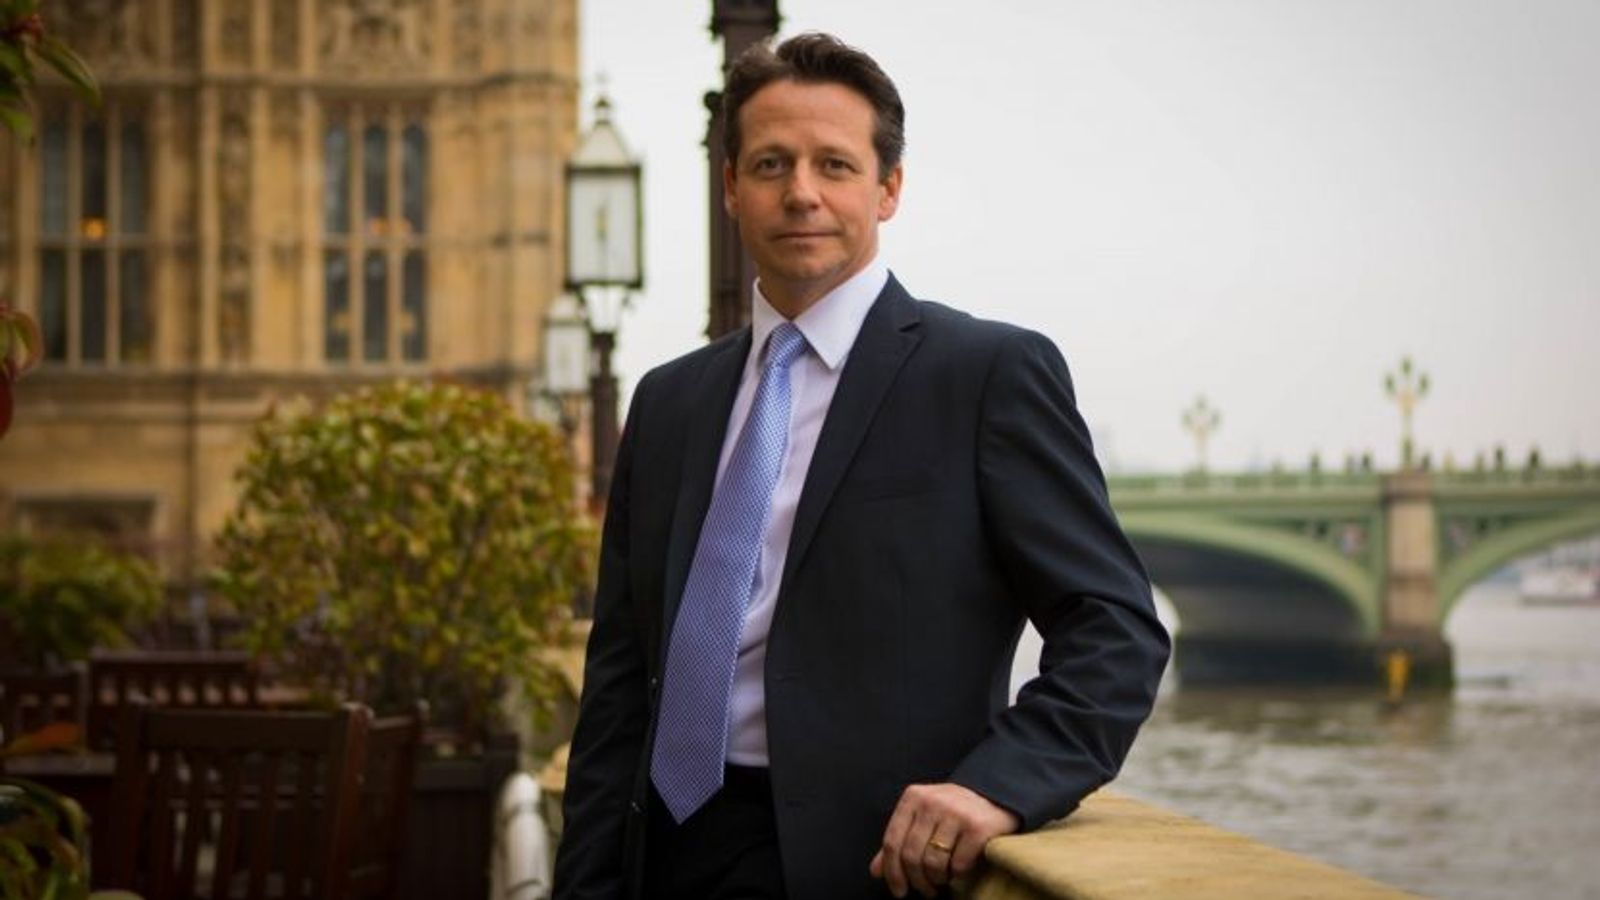 Government cabinet reshuffle: Nigel Huddleston MP named new sports minister